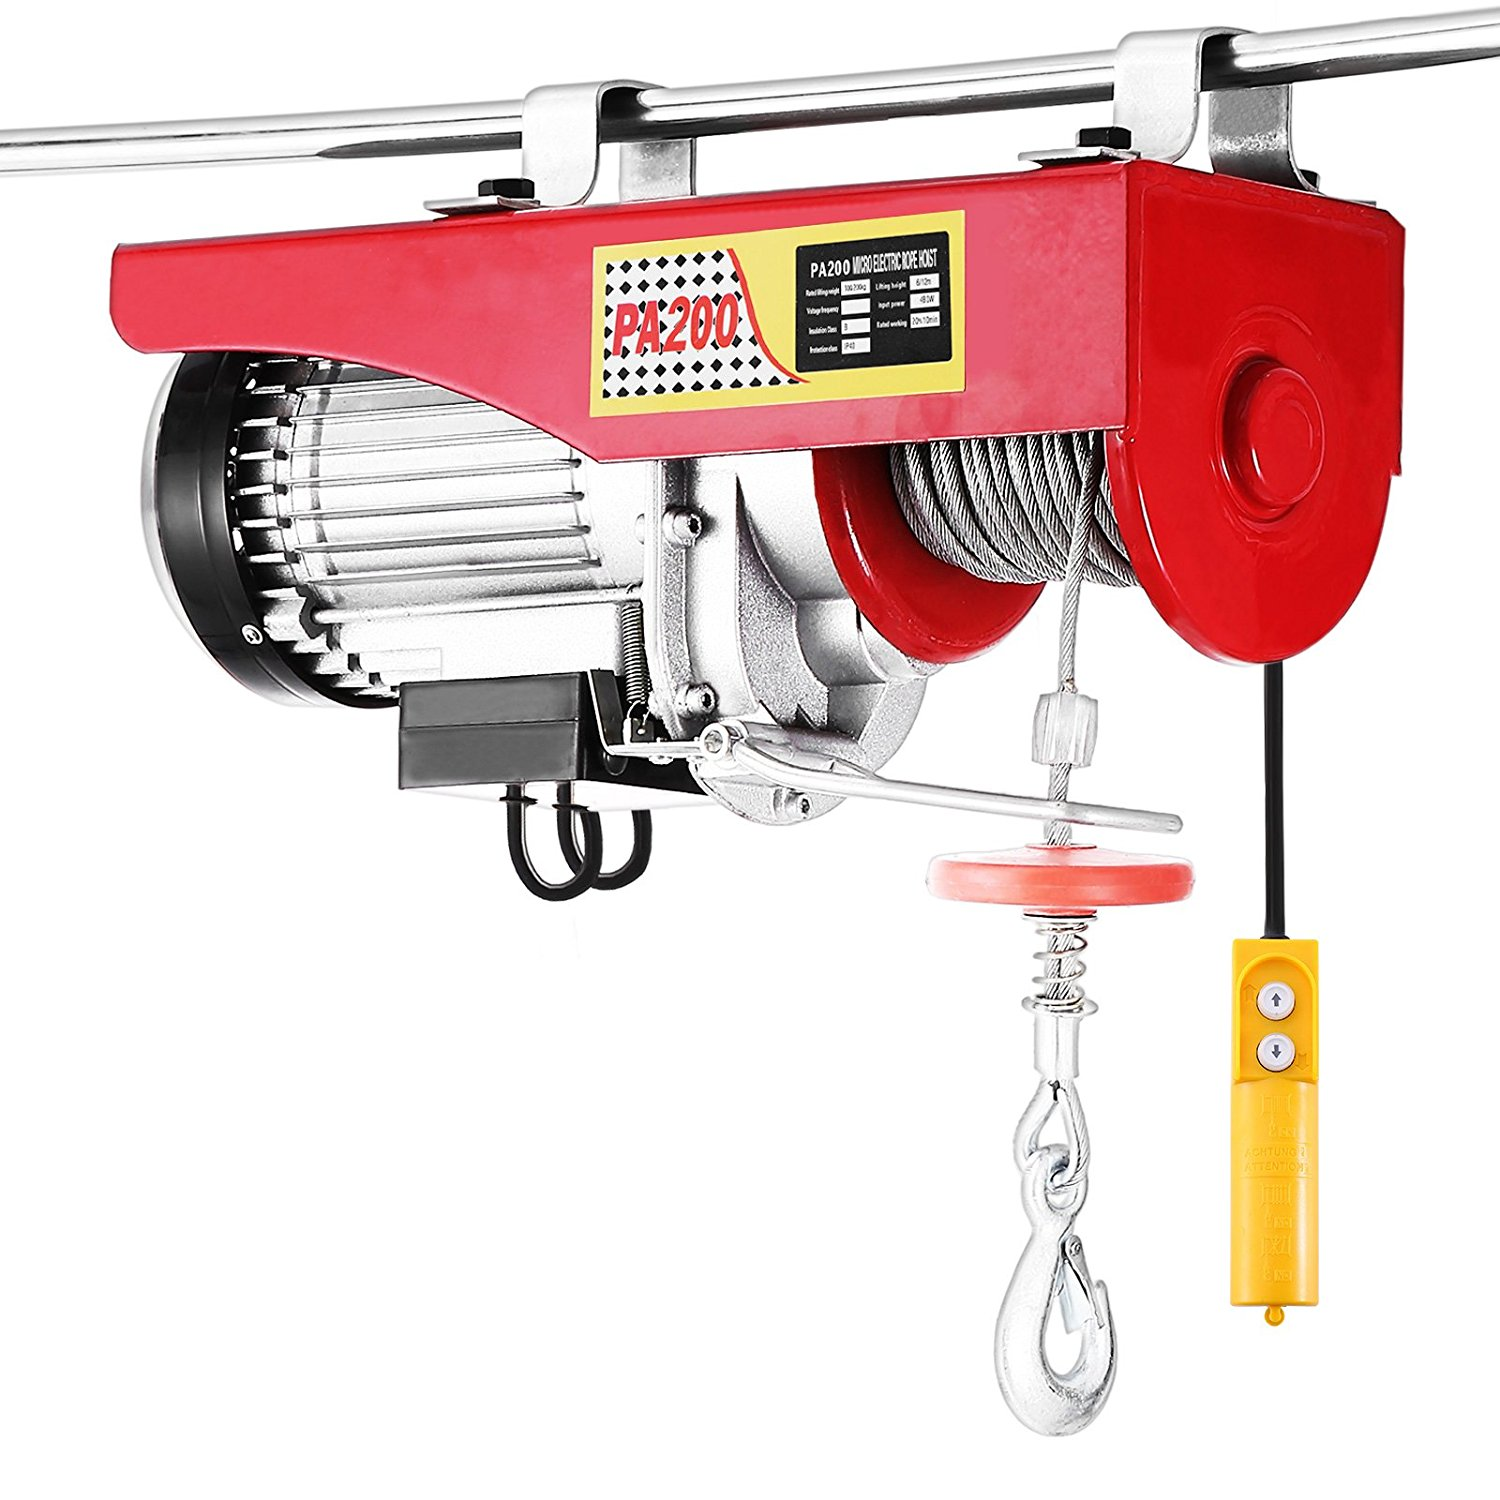 Happybuy Lift Electric Hoist 440 LBS Electric Hoist 110V Overhead Crane Lift Electric Wire Hoist Remote Control (440LBS)